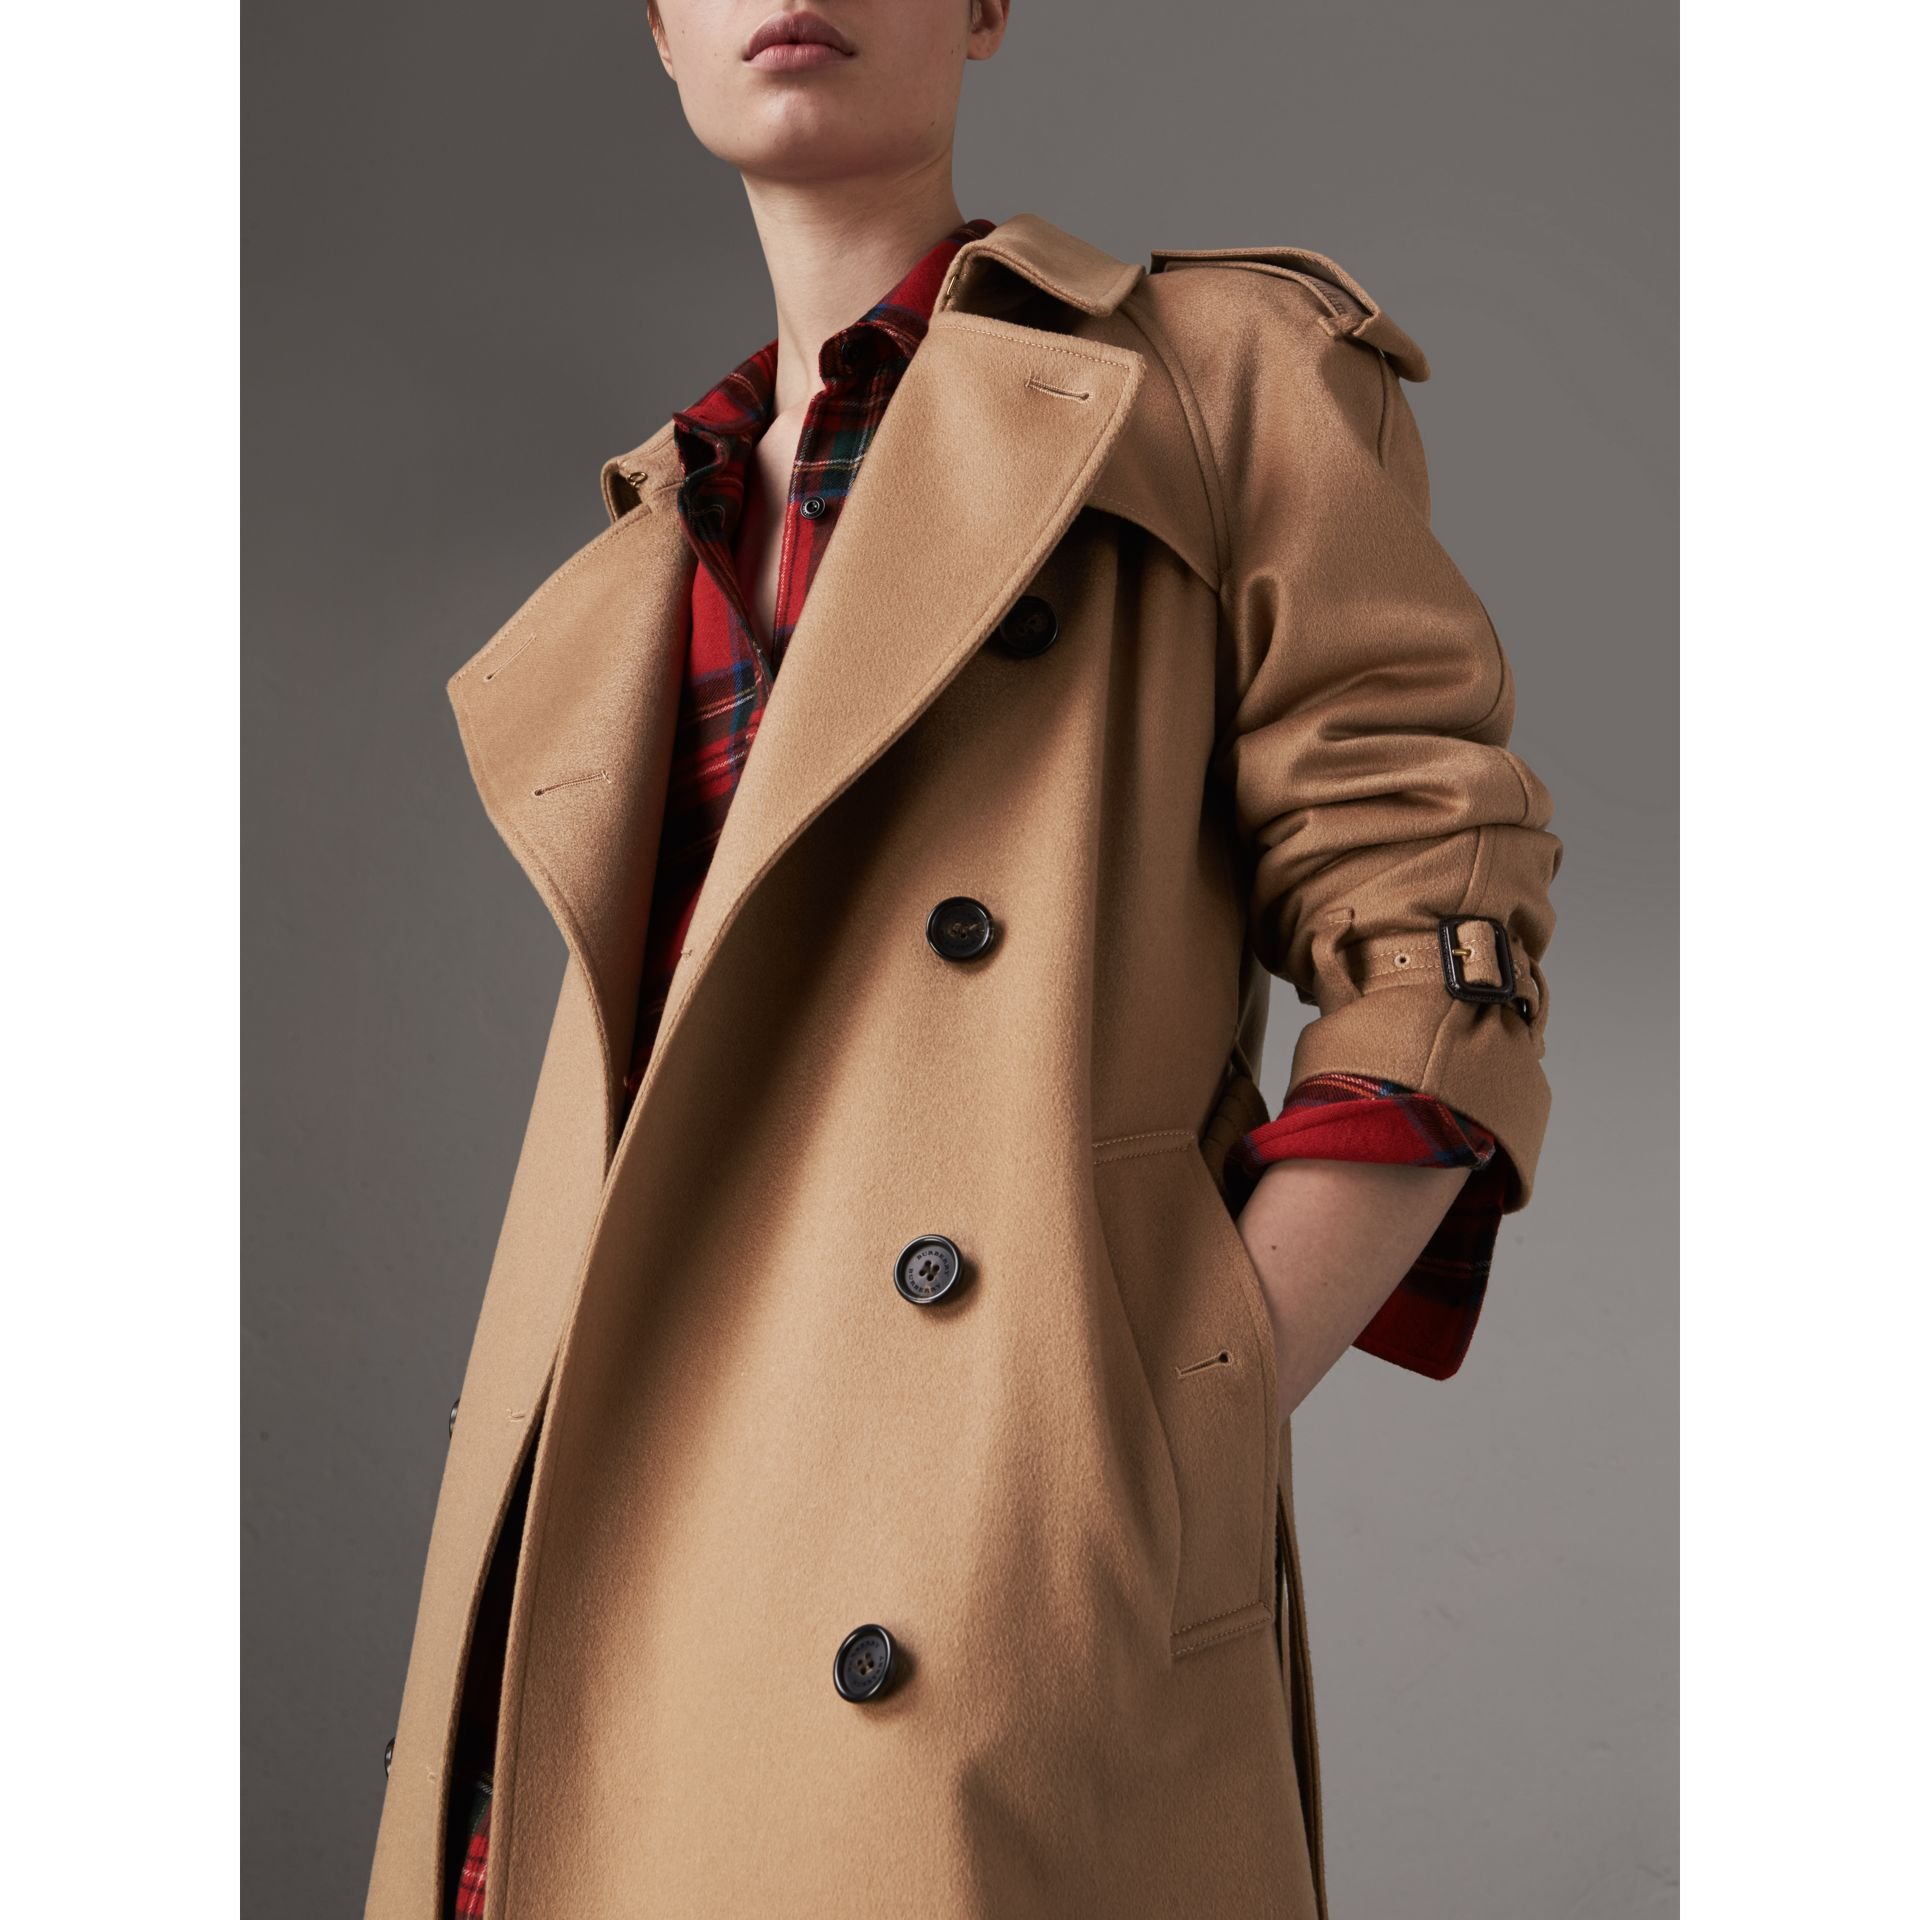 Cashmere Trench Coat in Camel - Women | Burberry United States - gallery image 4